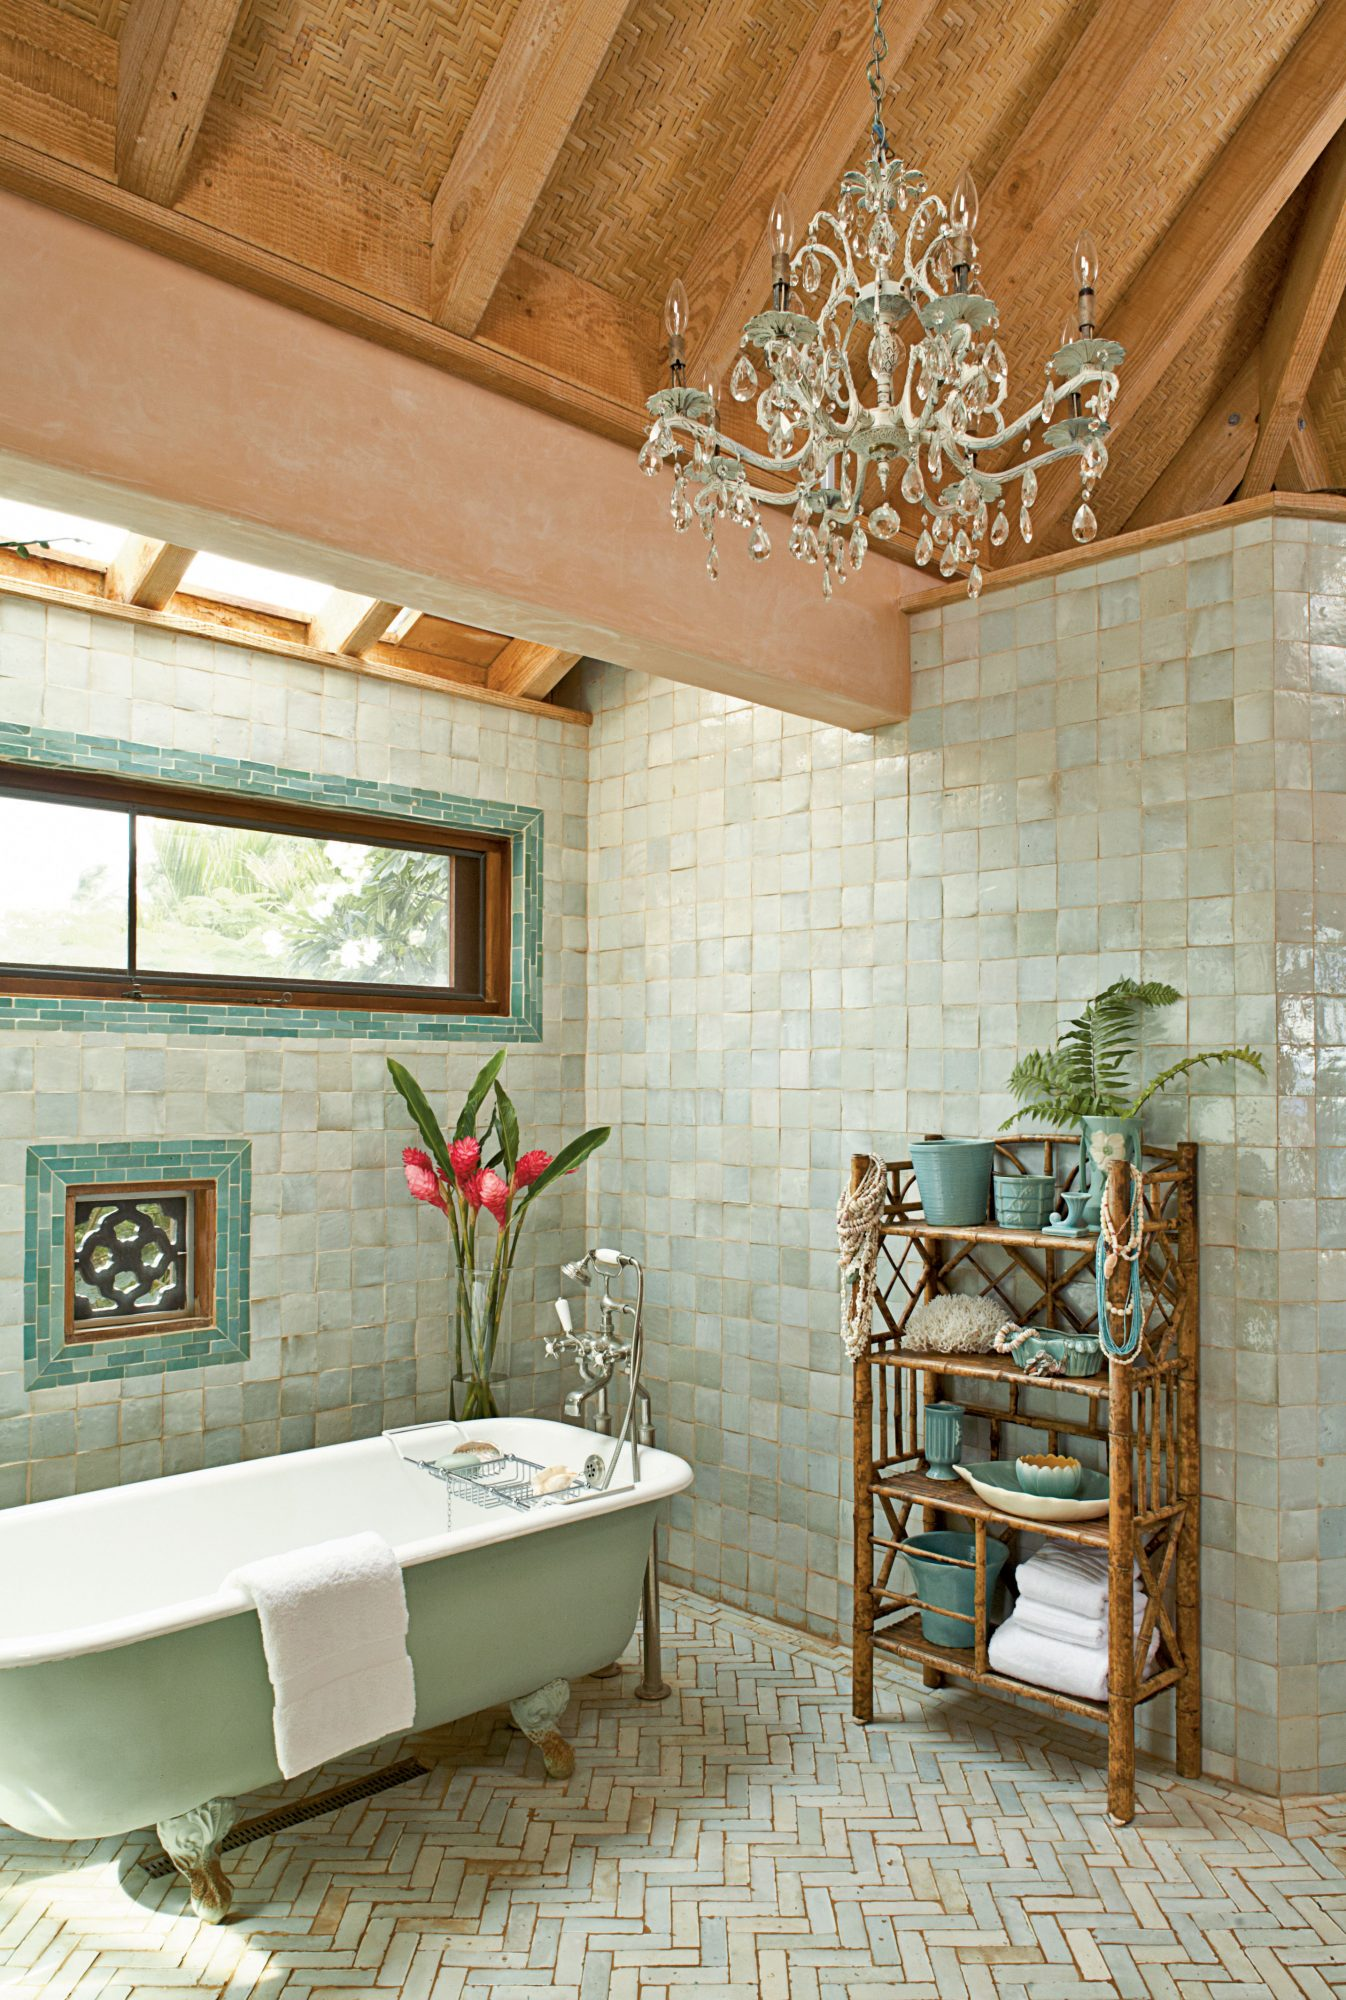 This master bathroom's shimmering Moroccan tiles are a softer take on the vibrant greenery outside and create a relaxing tone for a long soak. The light green tub—instead of a traditional white or cream—unifies the space.